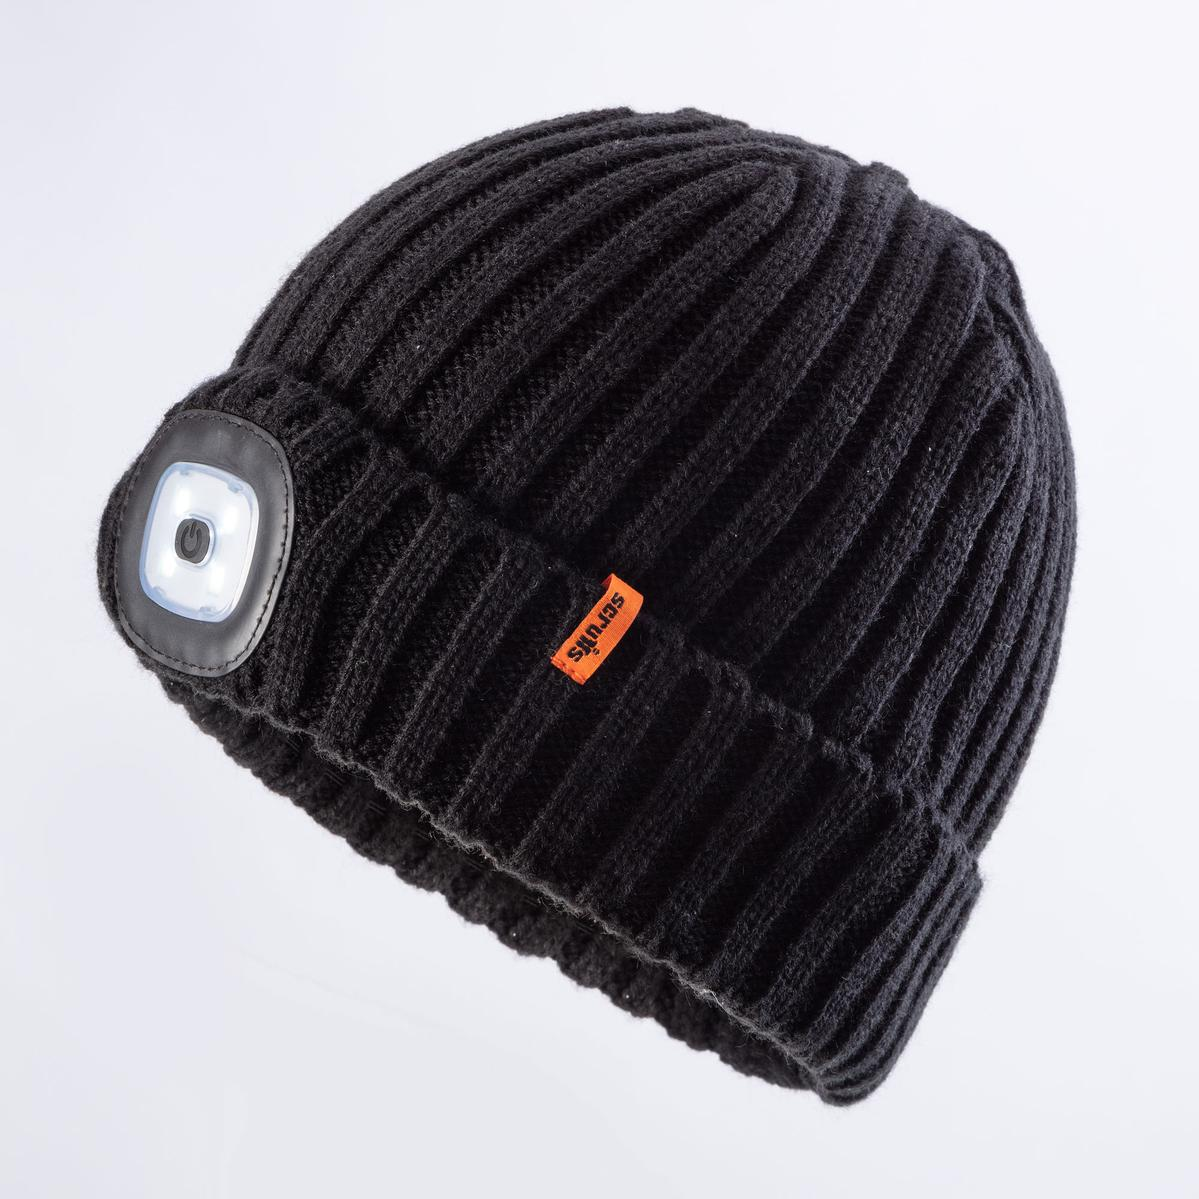 Scruffs LED Beanie Hat